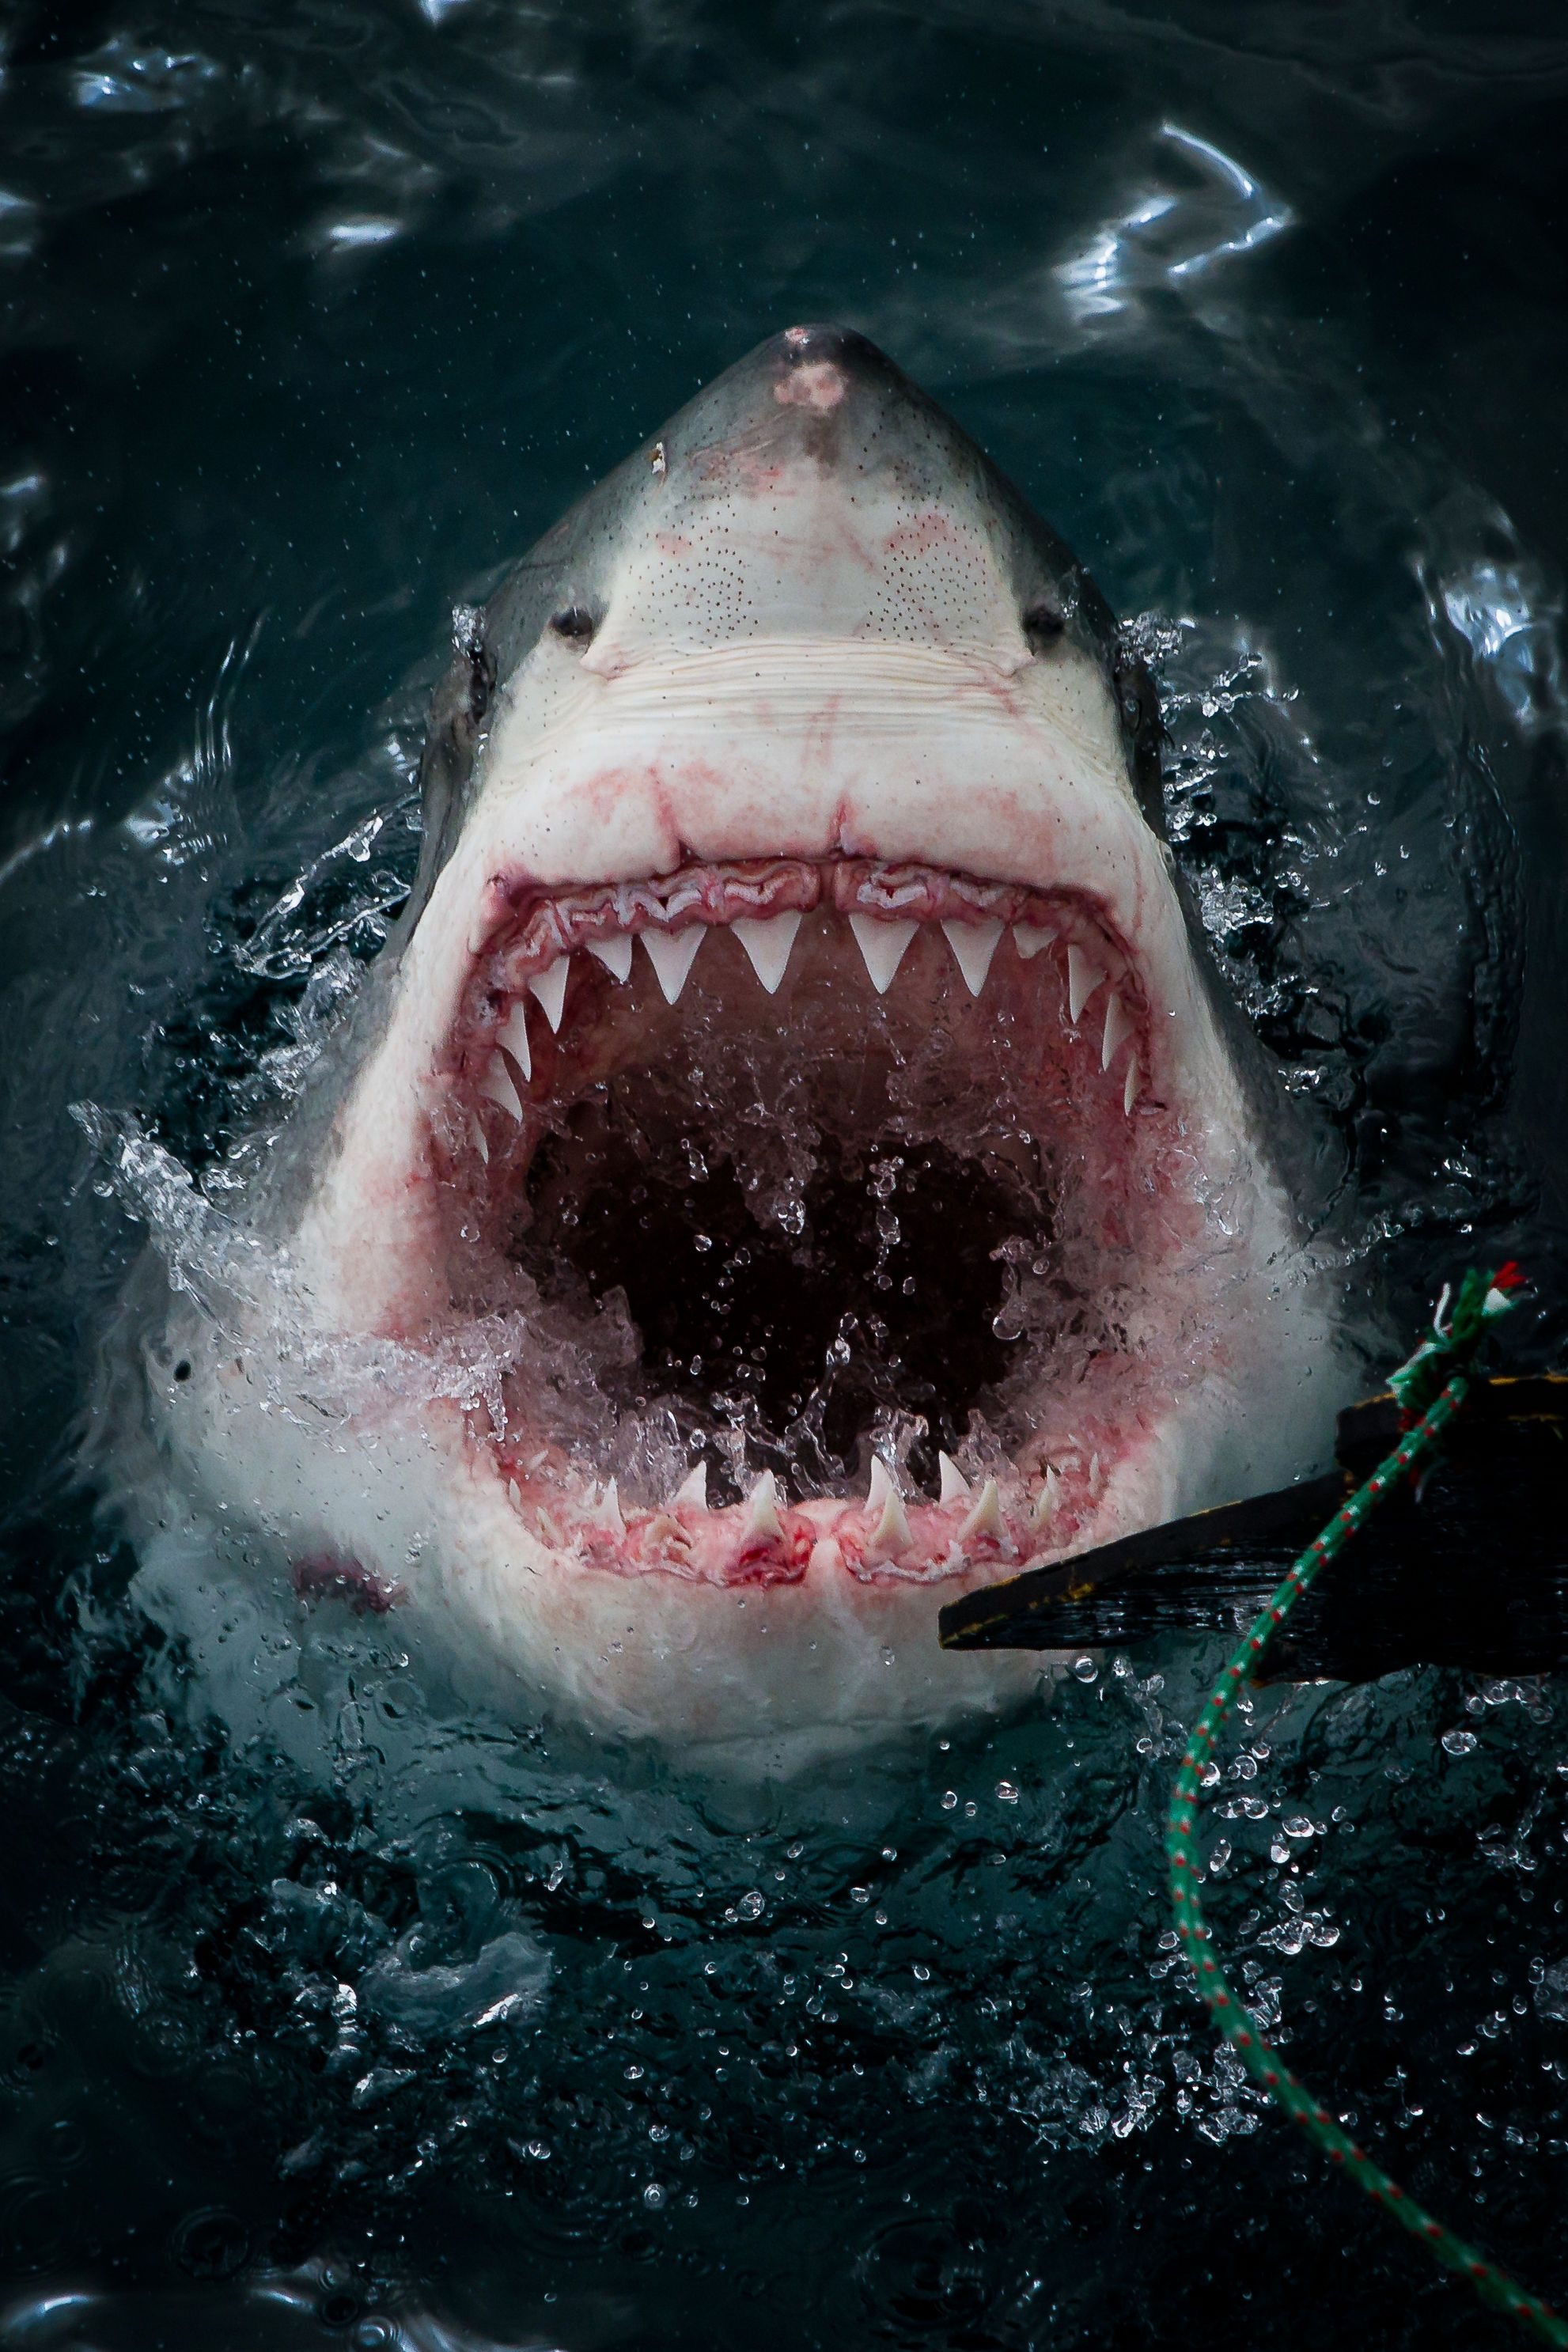 Opening wide for the camera as the shark shows off its teeth